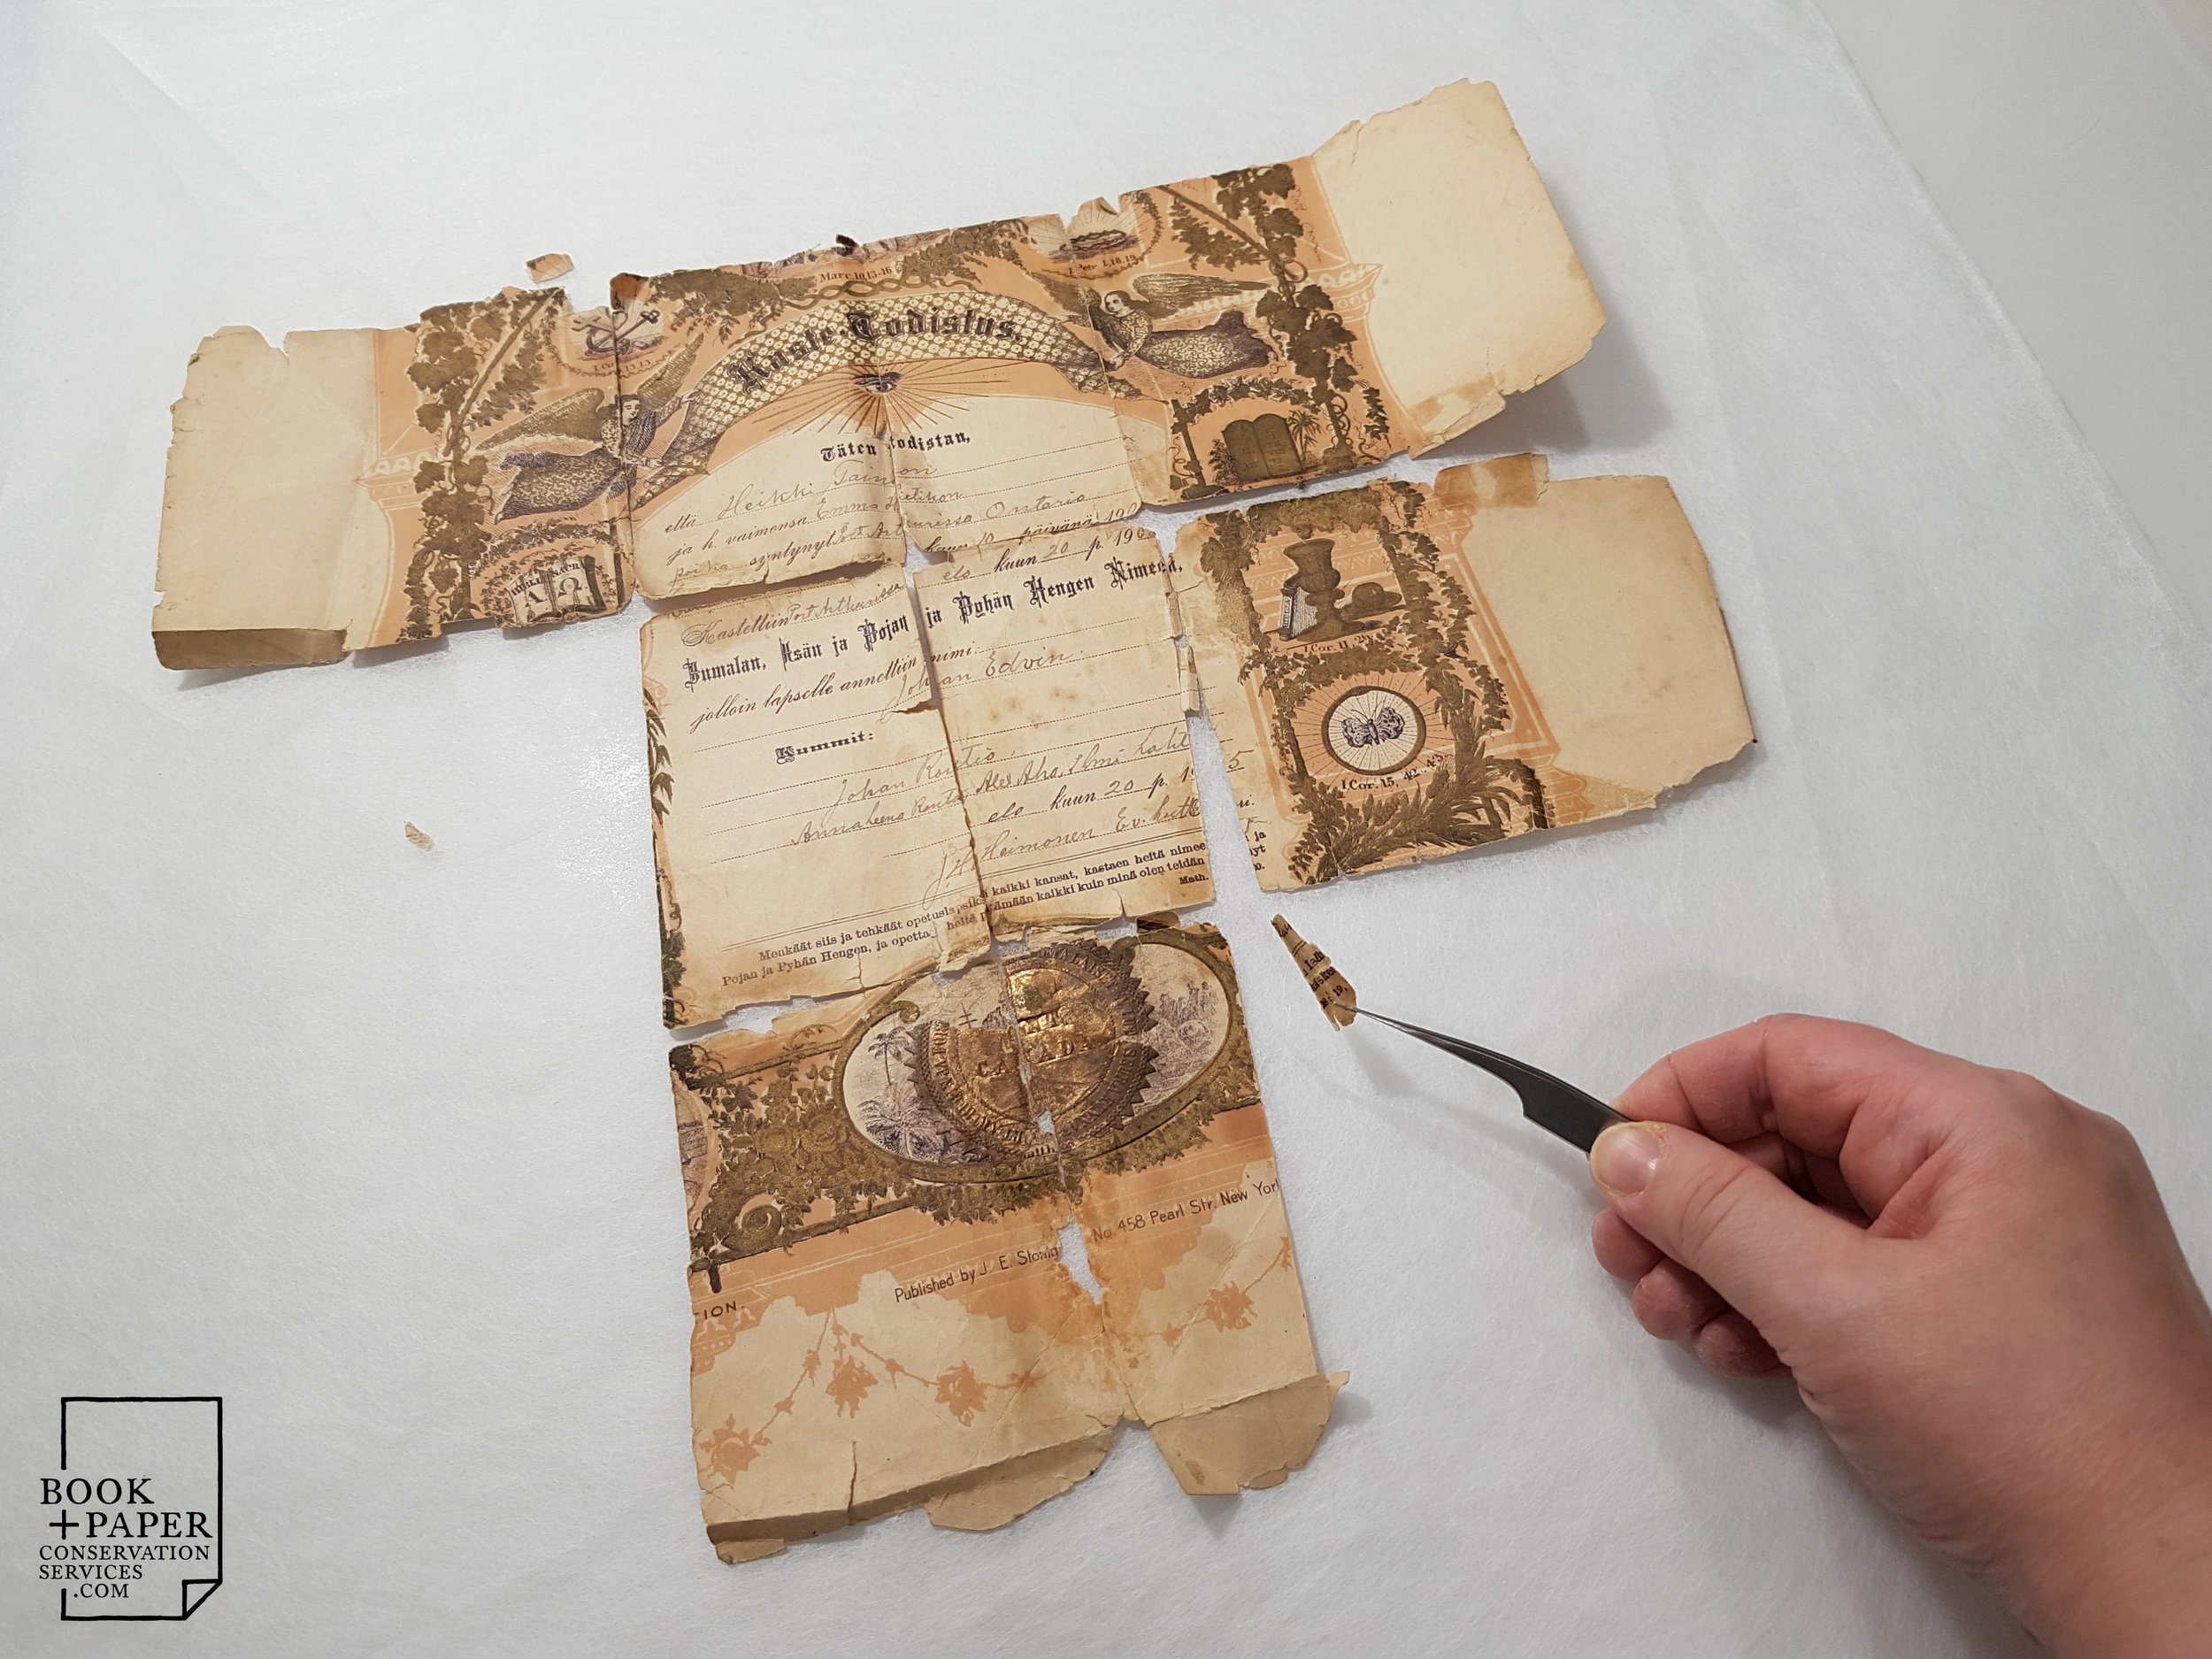 Reassembling fragments of the birth certificate before repair by lining.